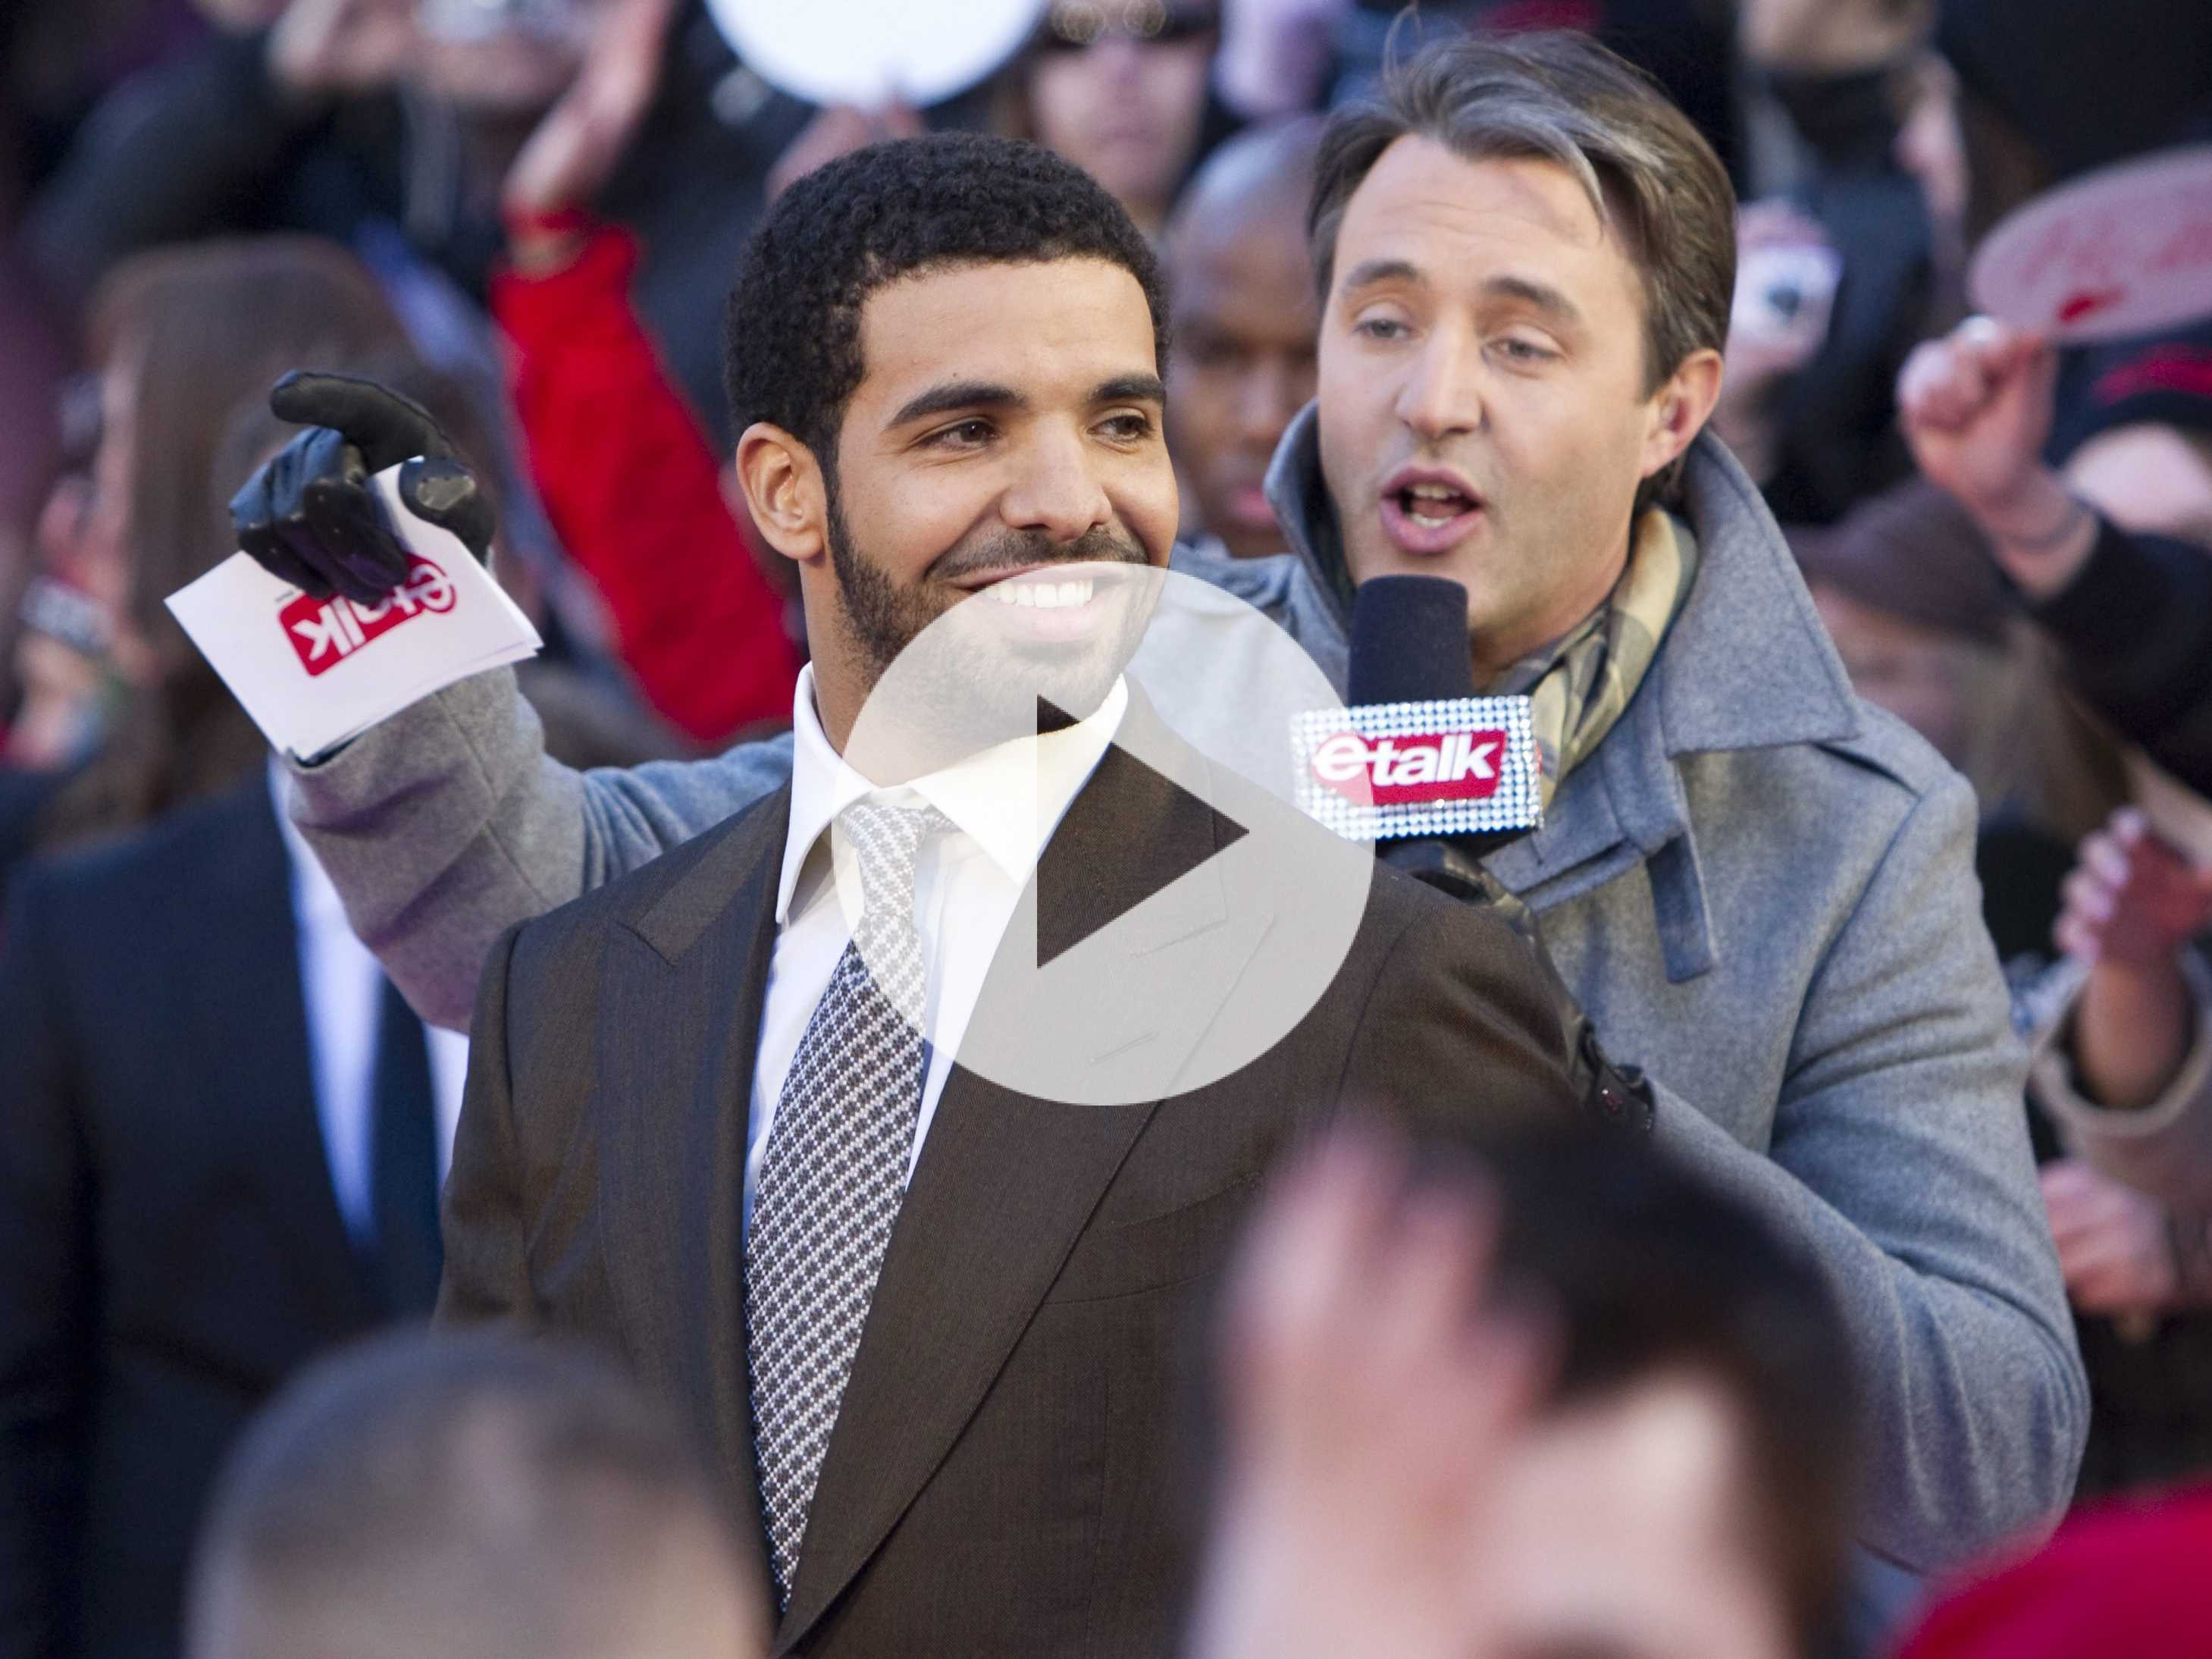 Watch: Drake 'I'm Upset' Video Features 'Degrassi' Reunion